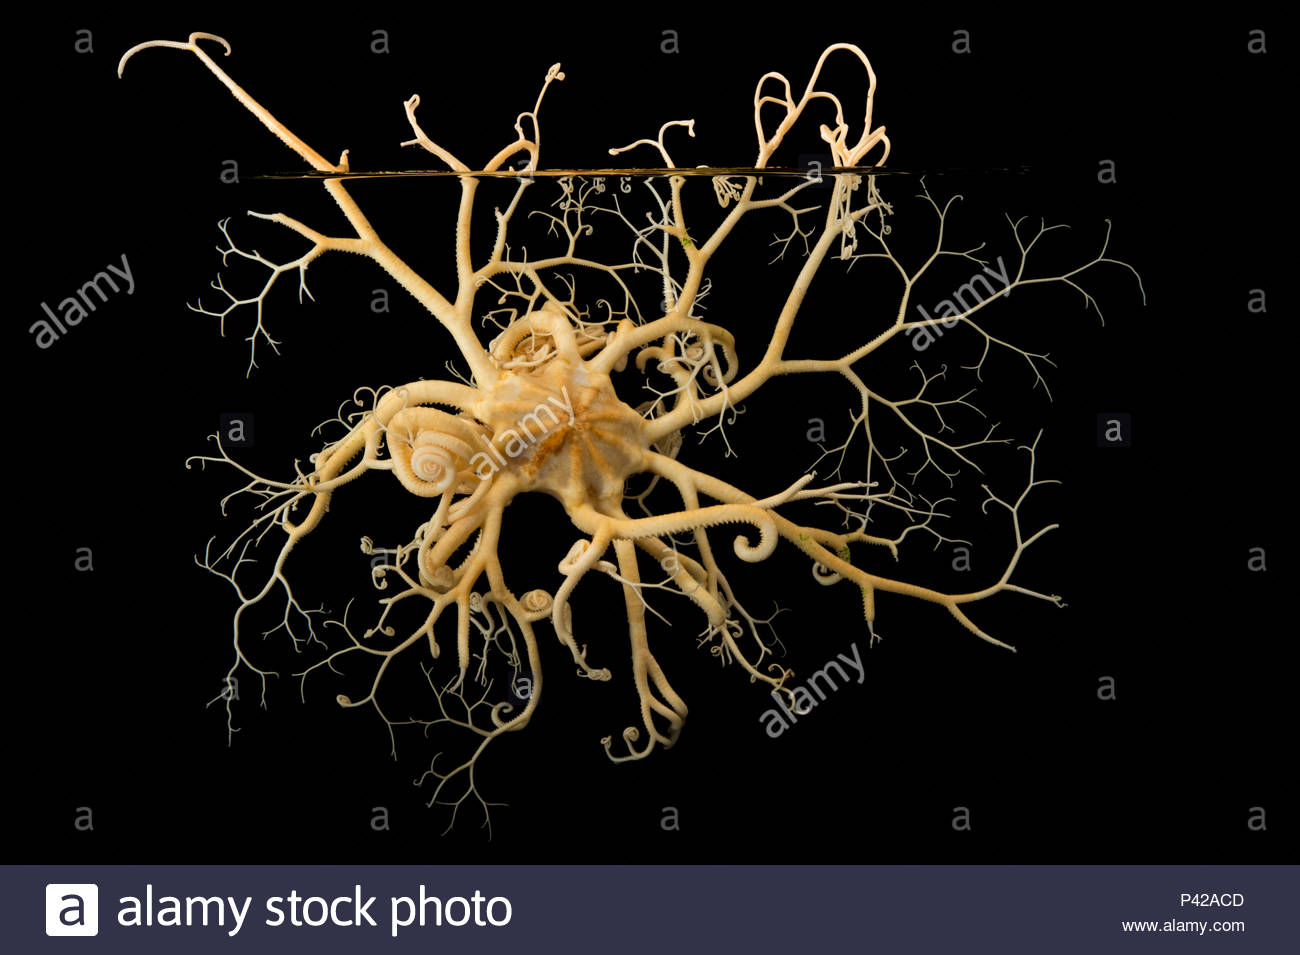 Basket star, Gorgonocephalus eucnemis, at the Alaska SeaLife Center. - Stock Image